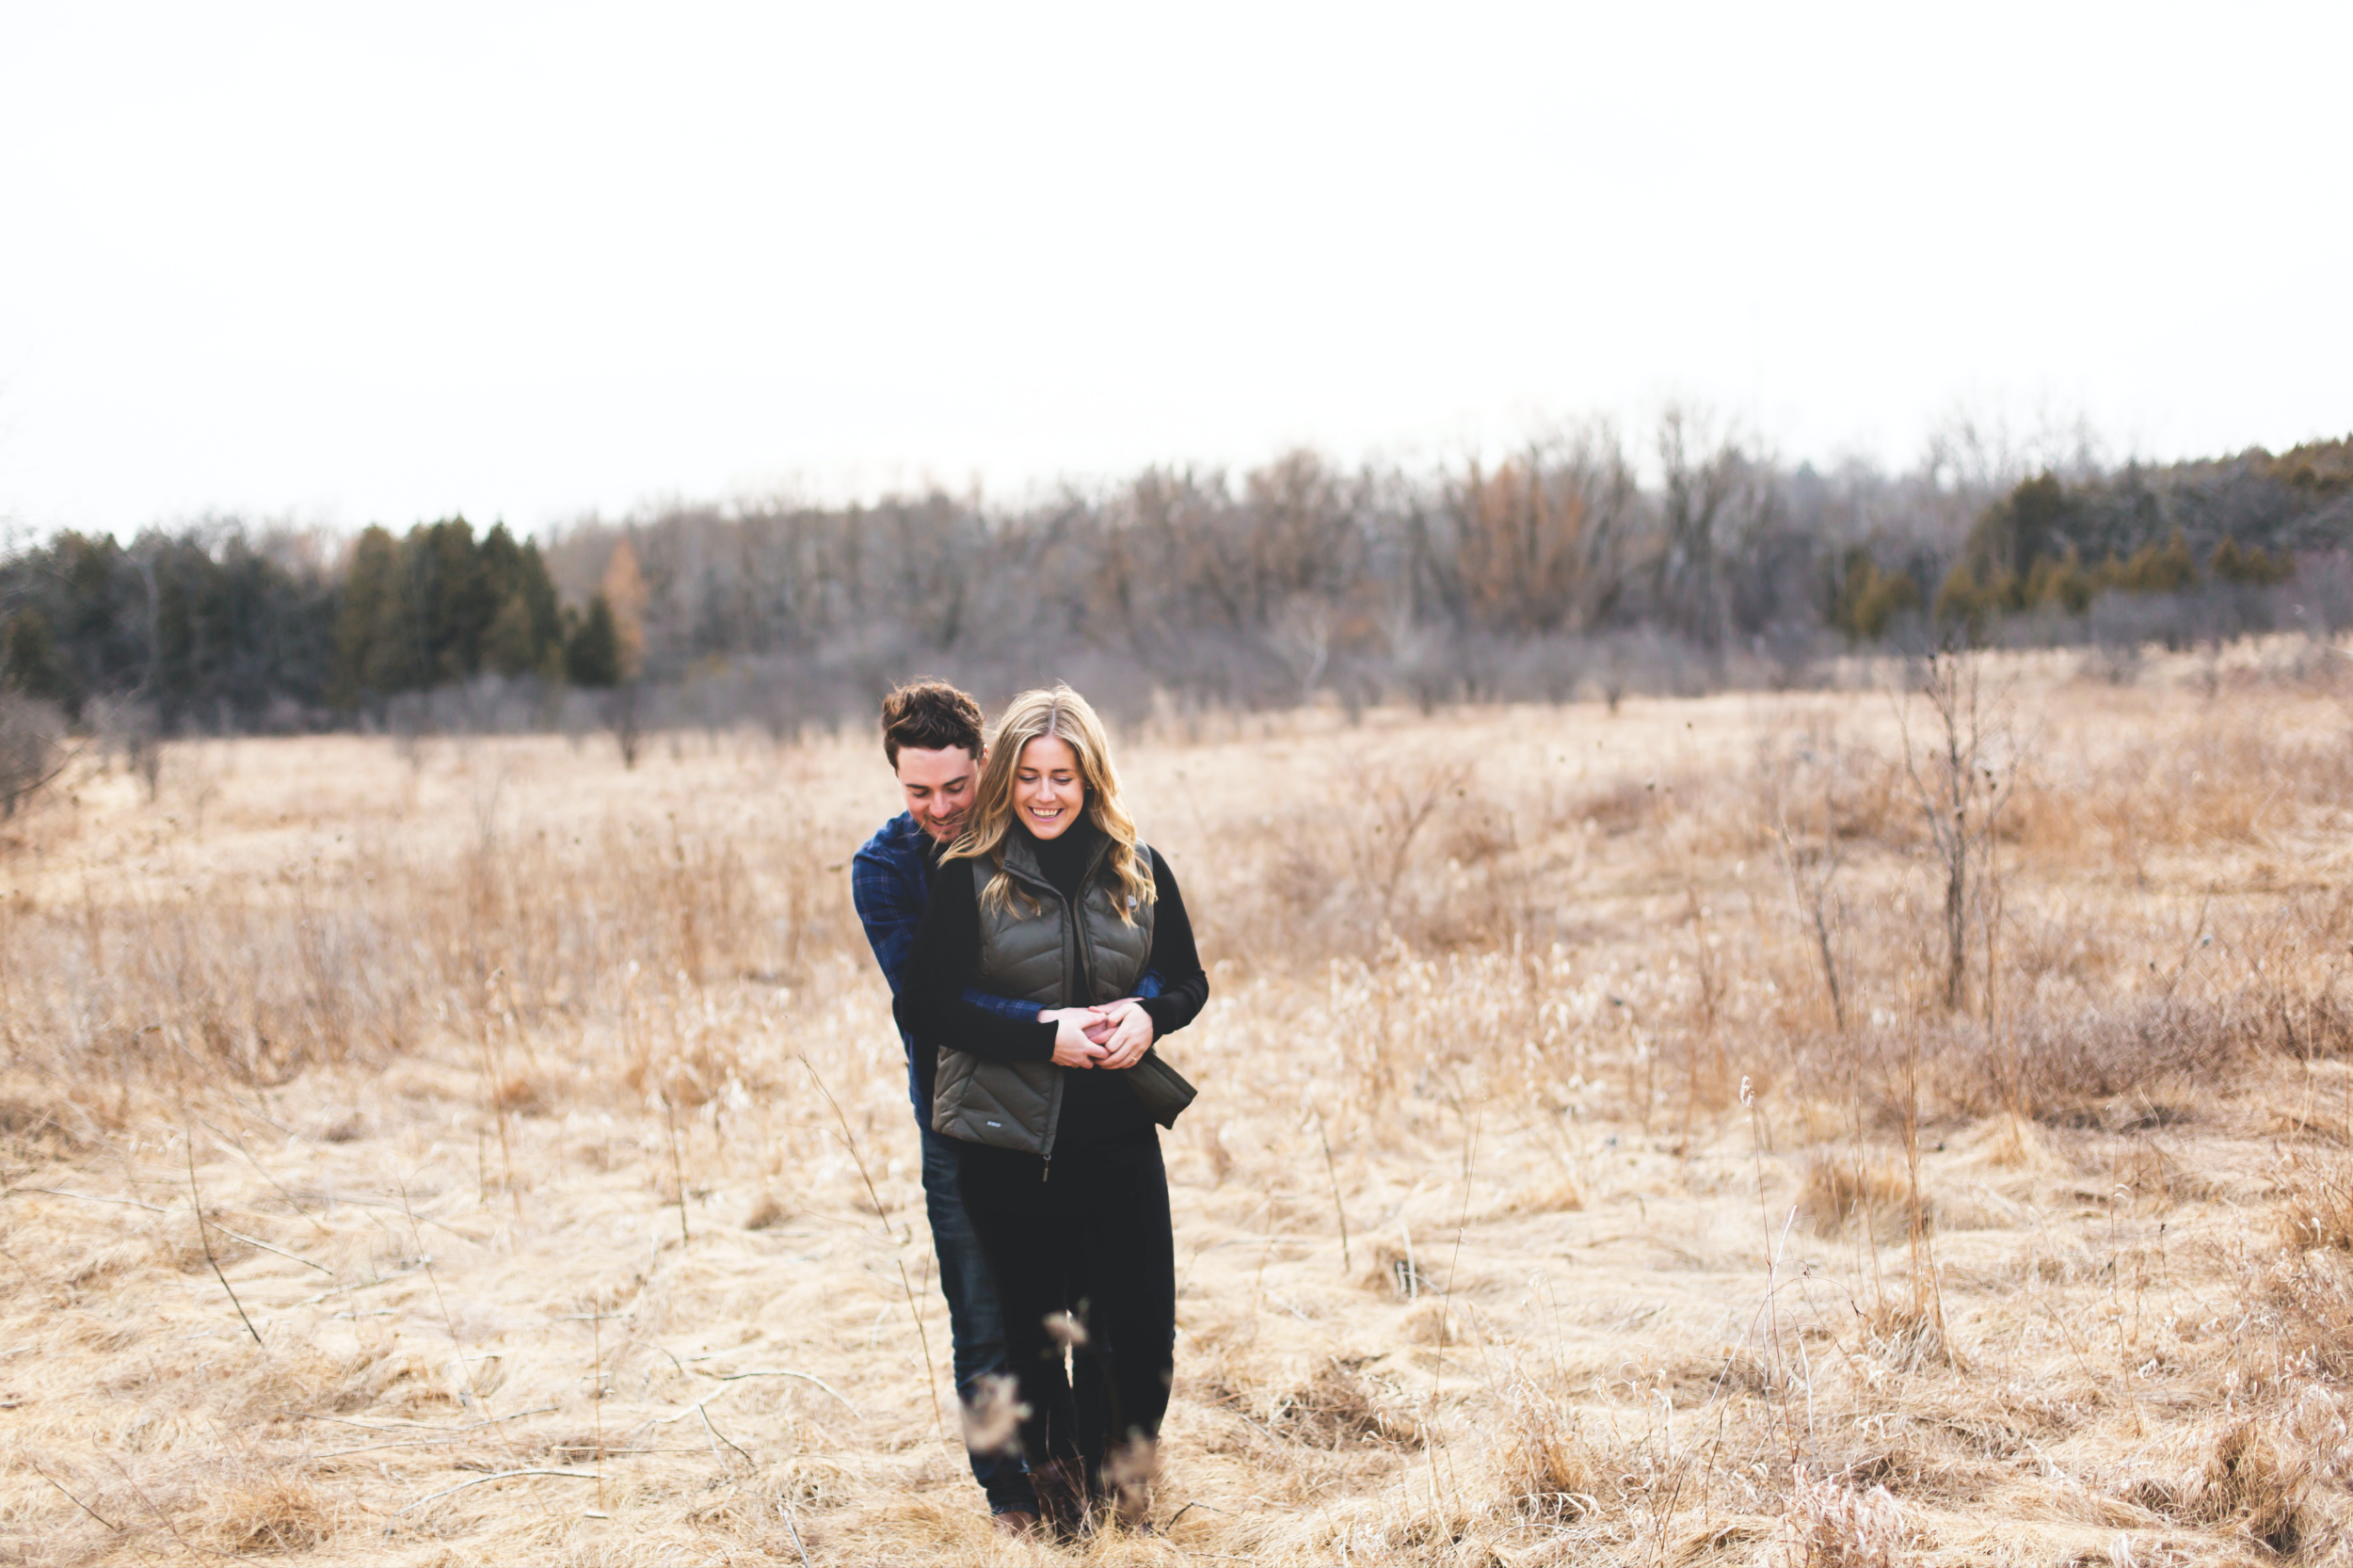 Engagement-Session-Photographer-Guelph-Lake-Hamilton-Toronto-Niagara-Photography-Moments-by-Lauren-Photo-Image-5.png